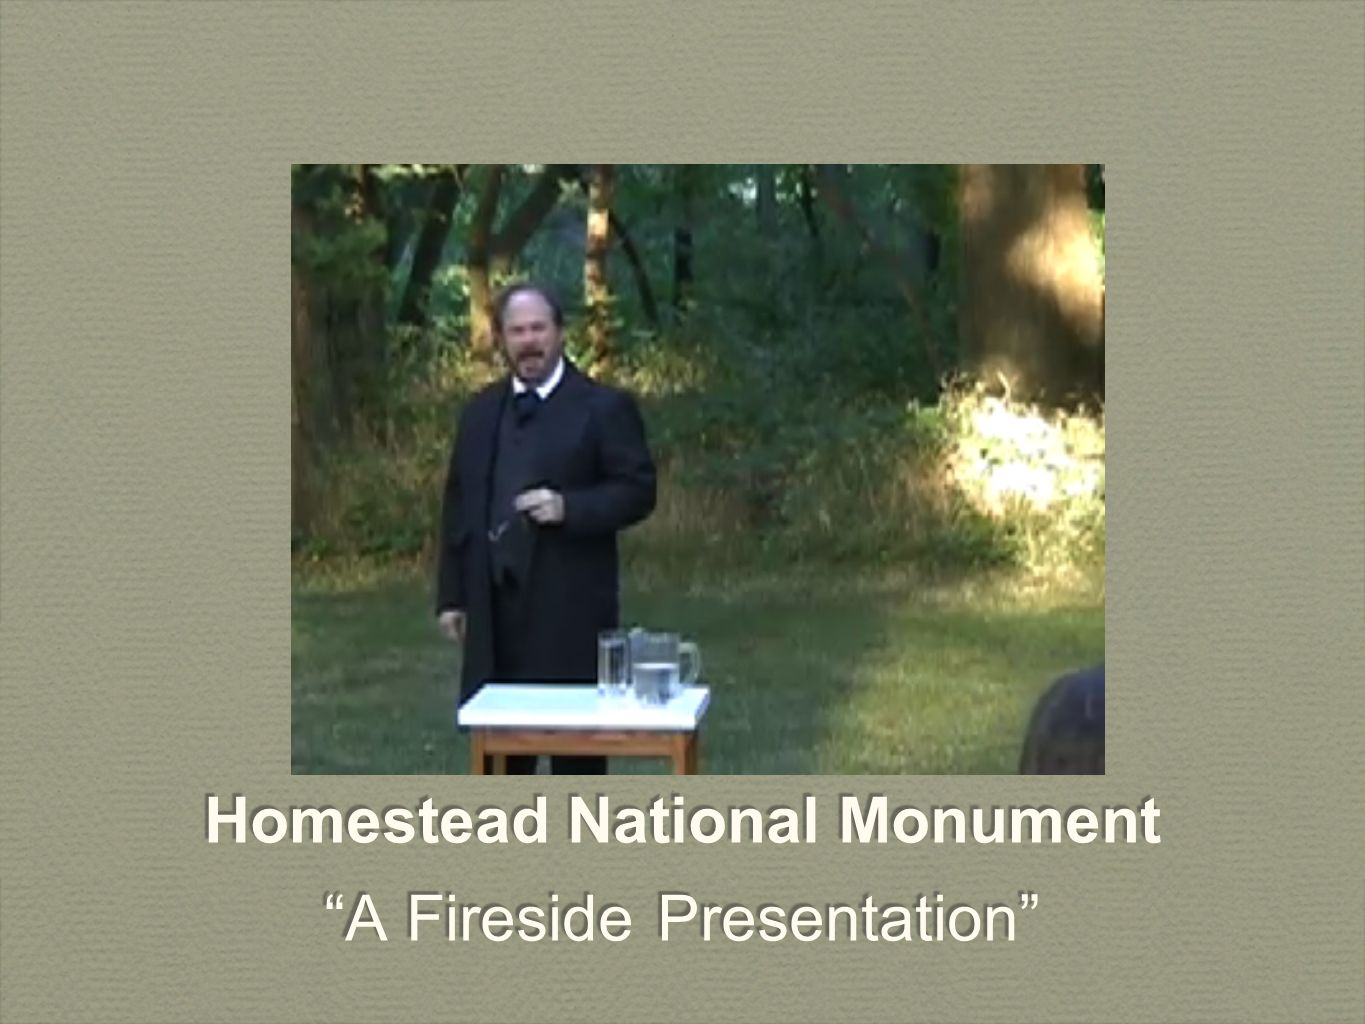 Homestead National Monument A Fireside Presentation